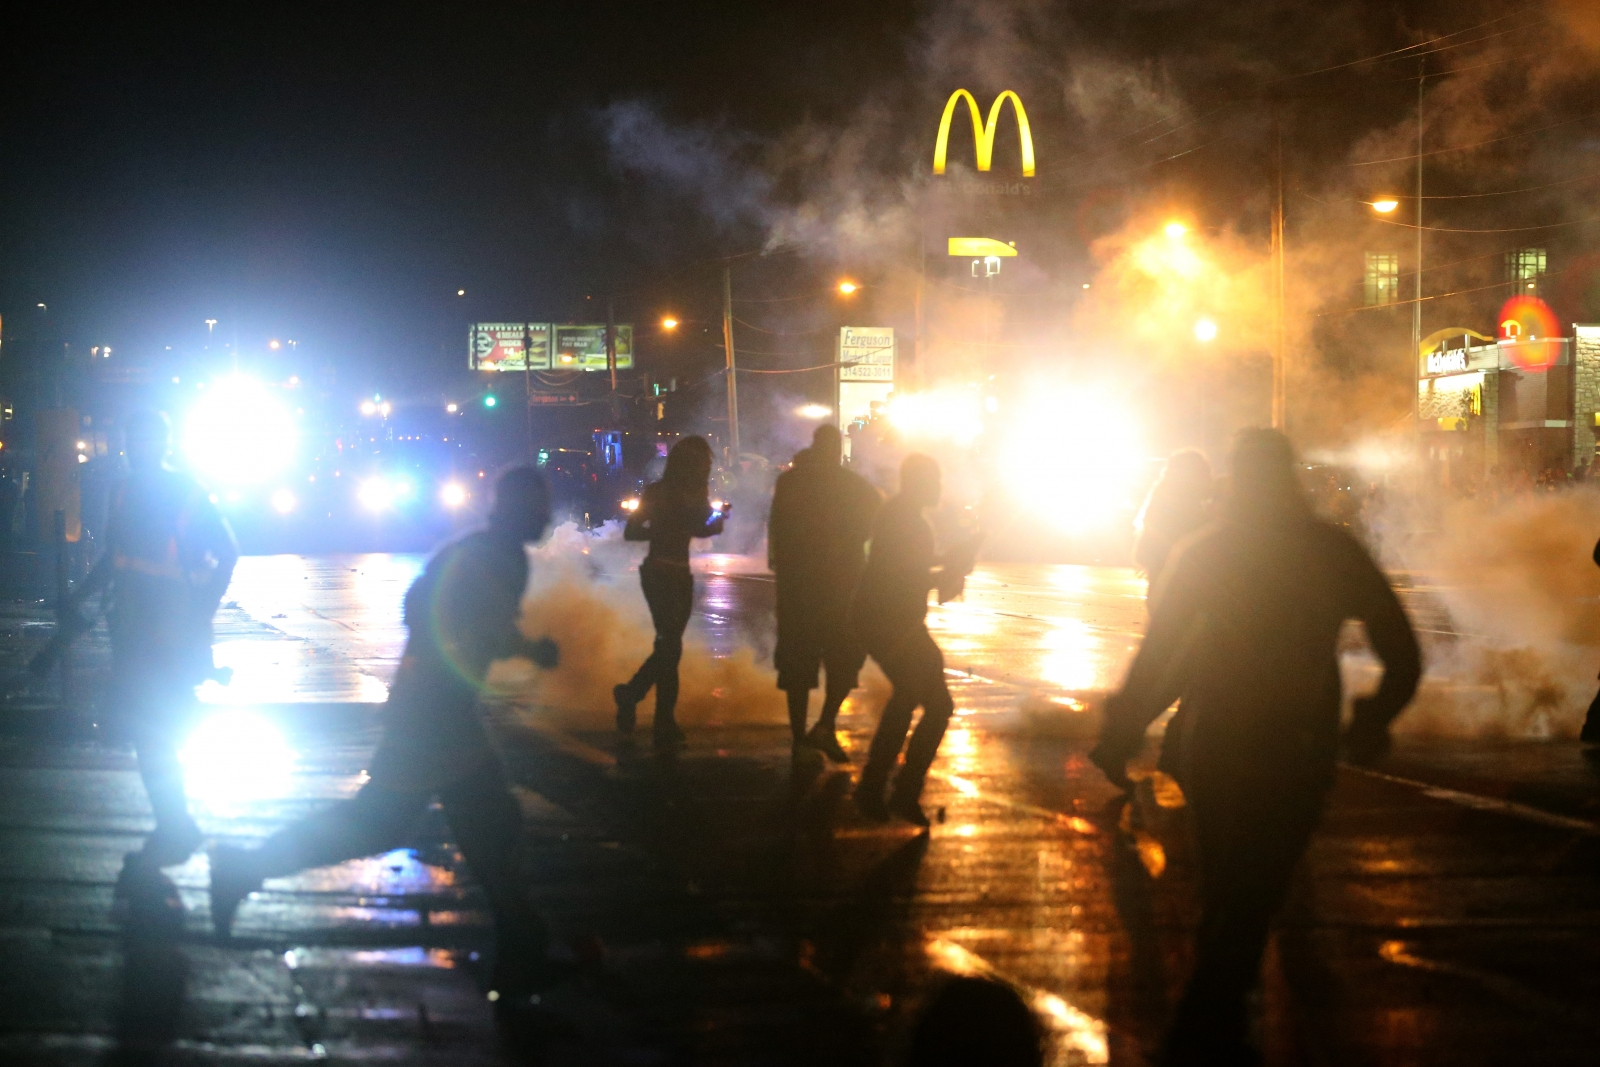 Police fire tear gas at protesters defying a curfew on the streets of Ferguson, Missouri (Getty)